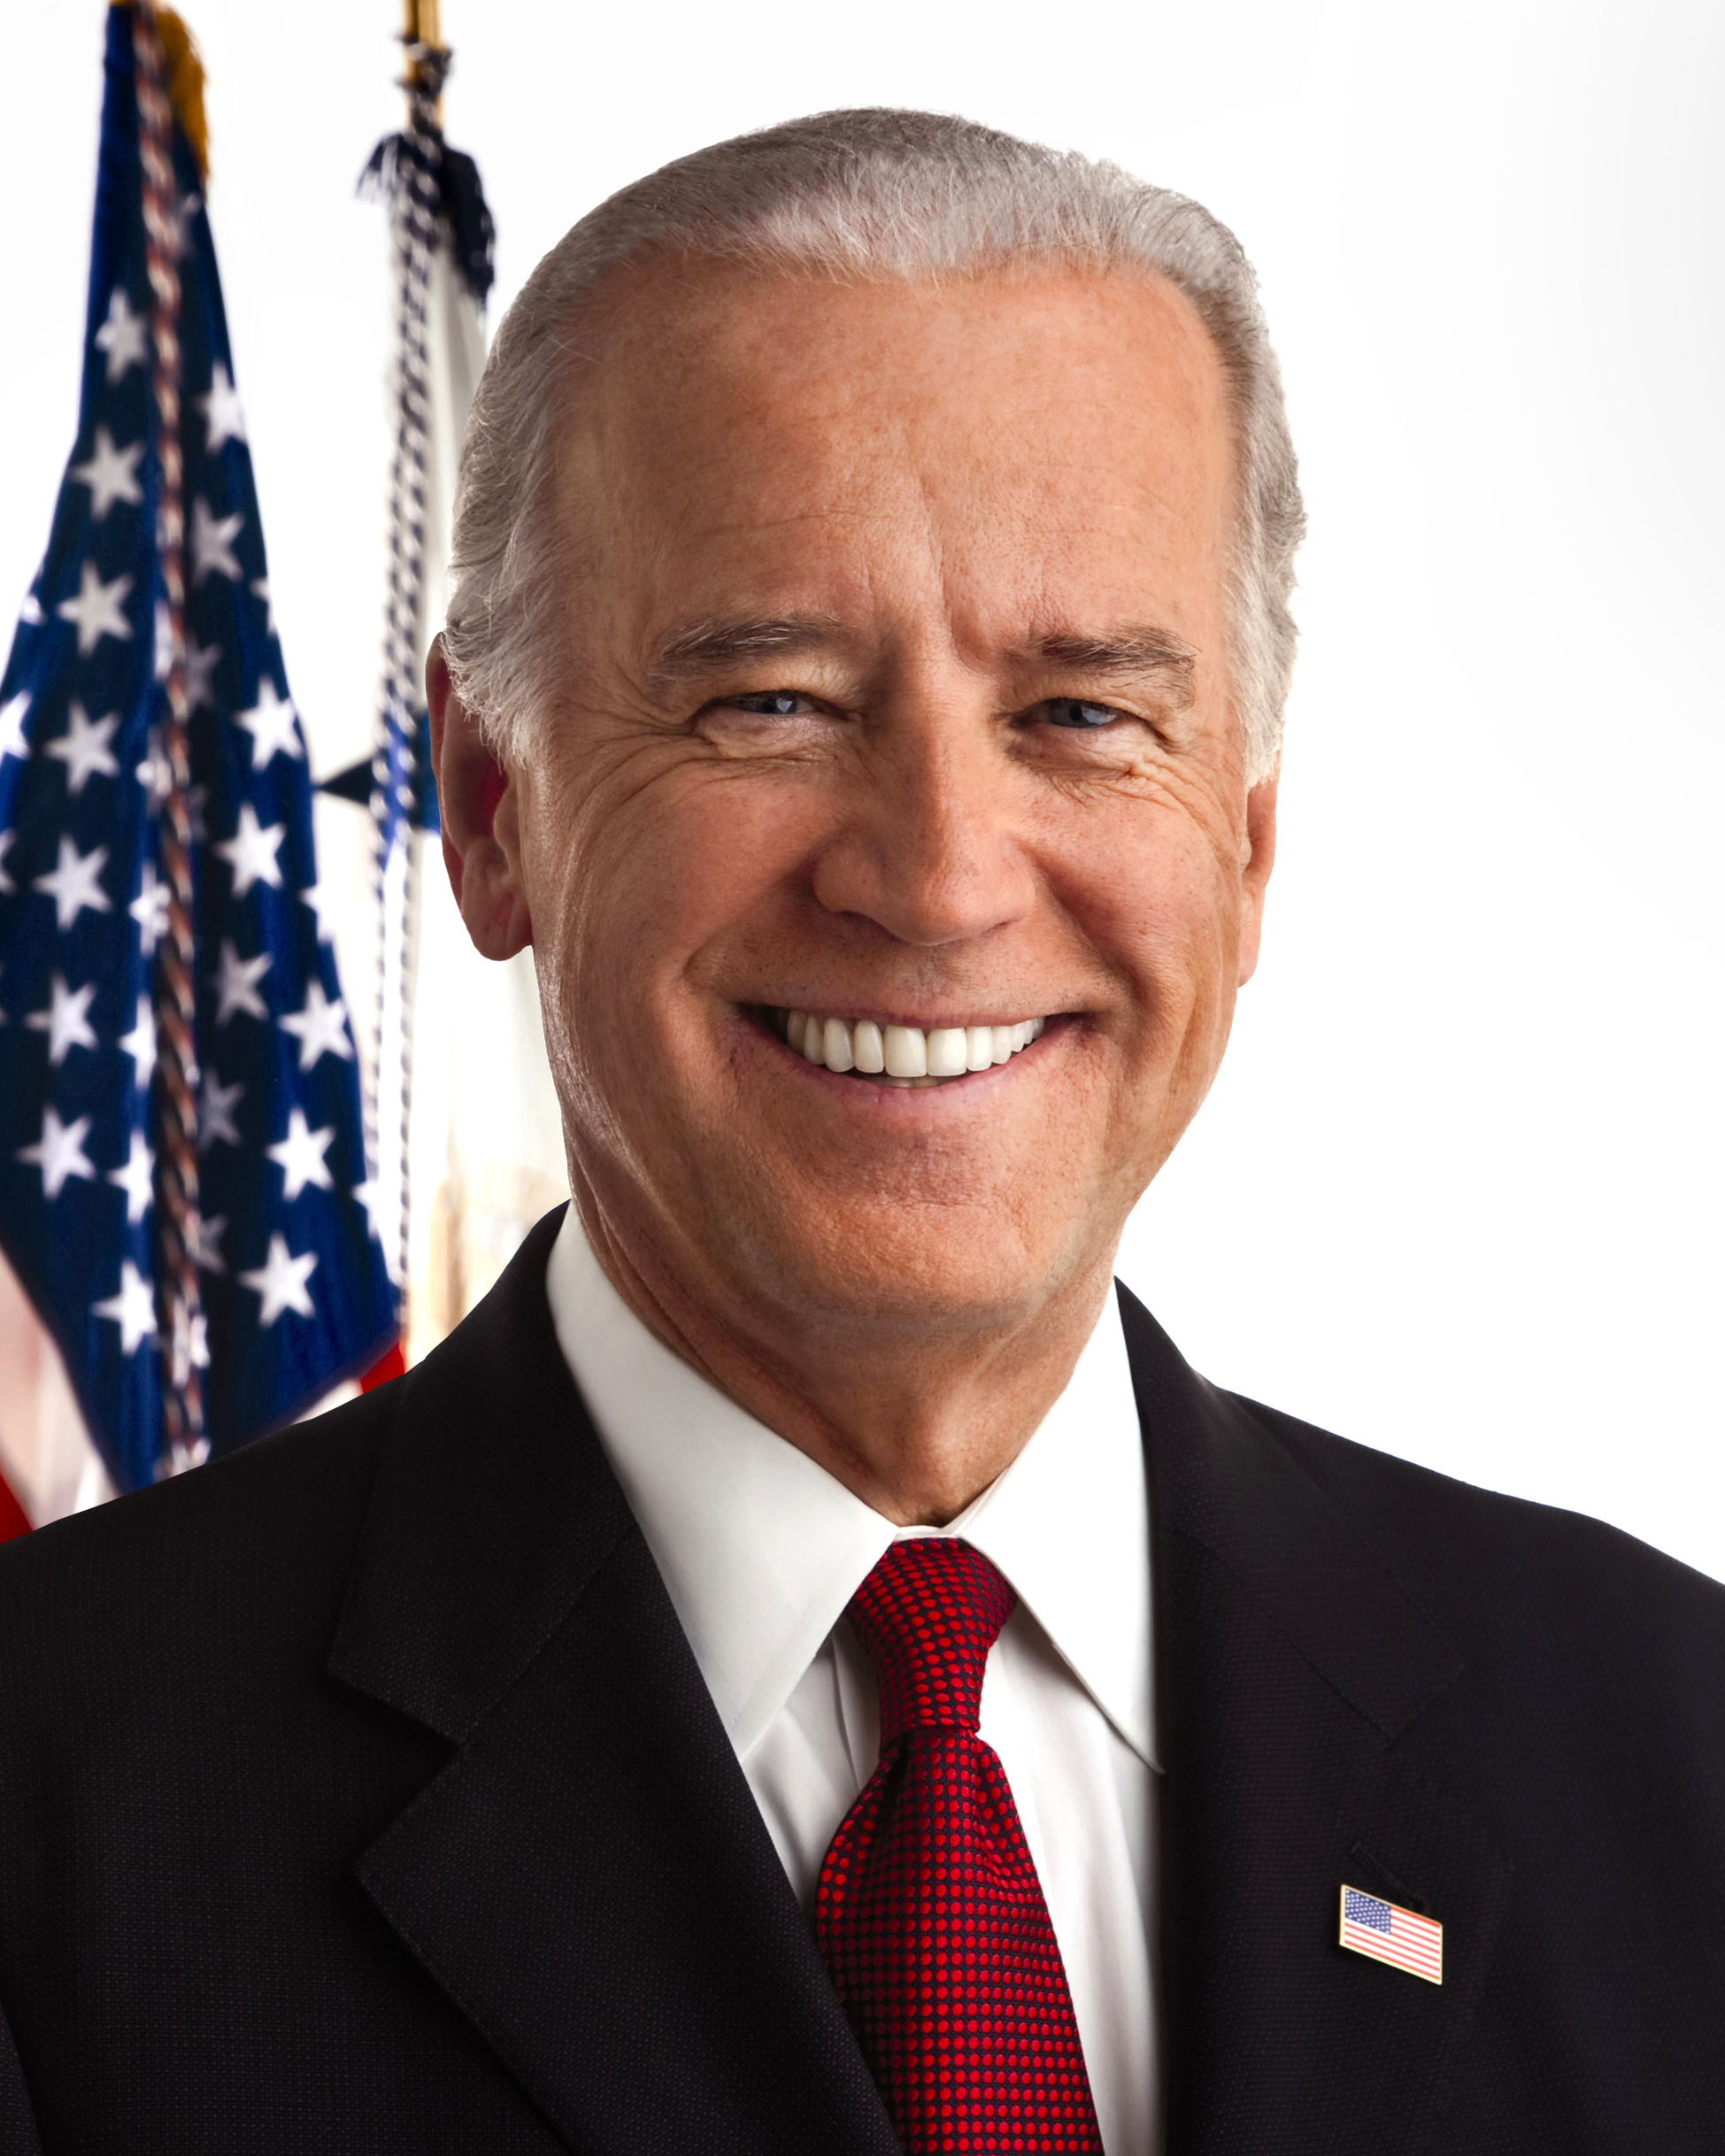 Political positions of Joe Biden - Wikipedia, the free encyclopedia